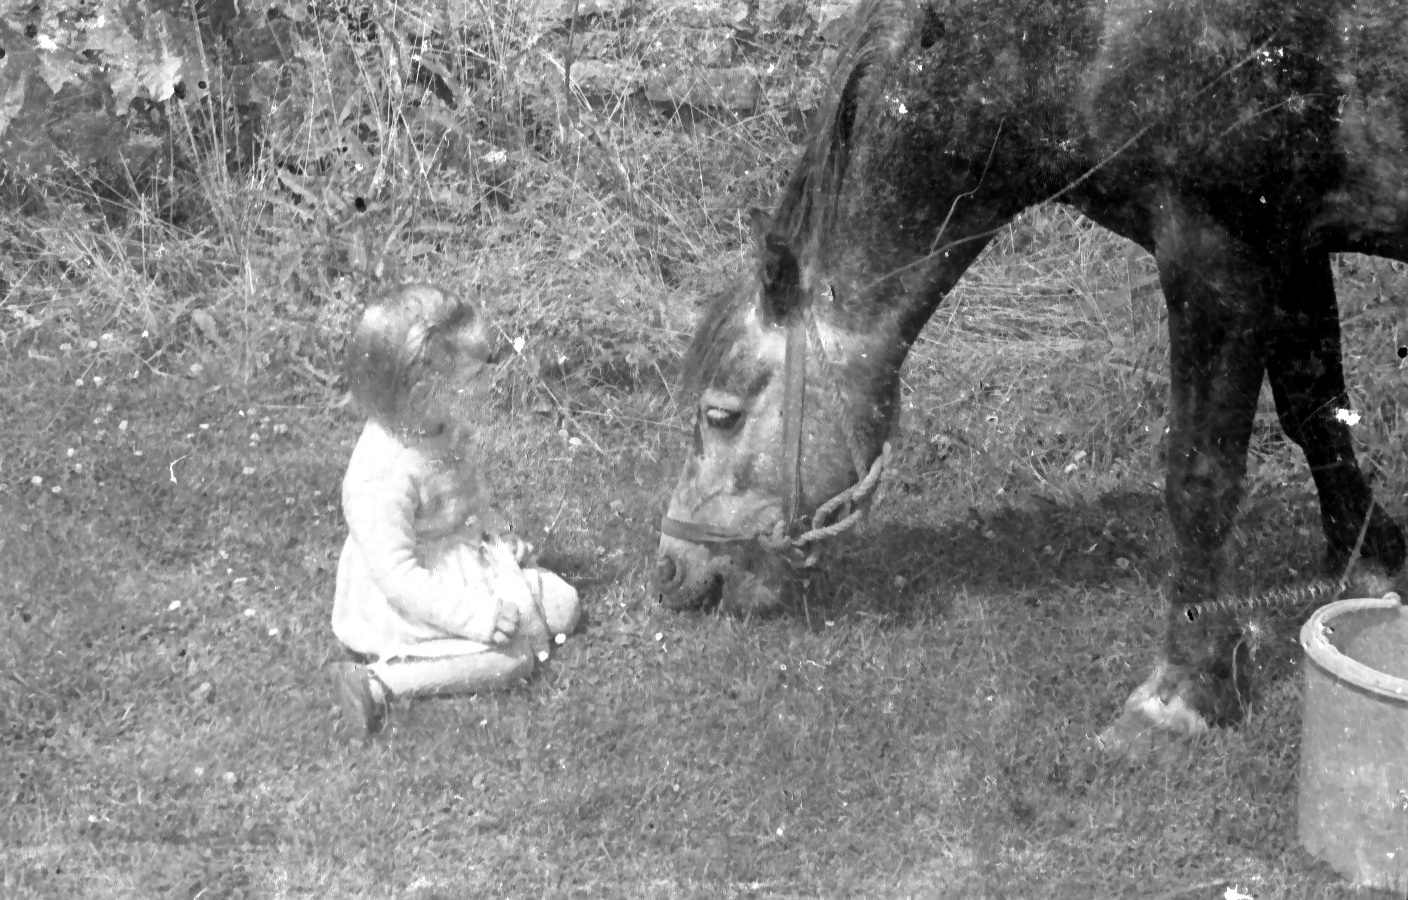 jenny with equine friend